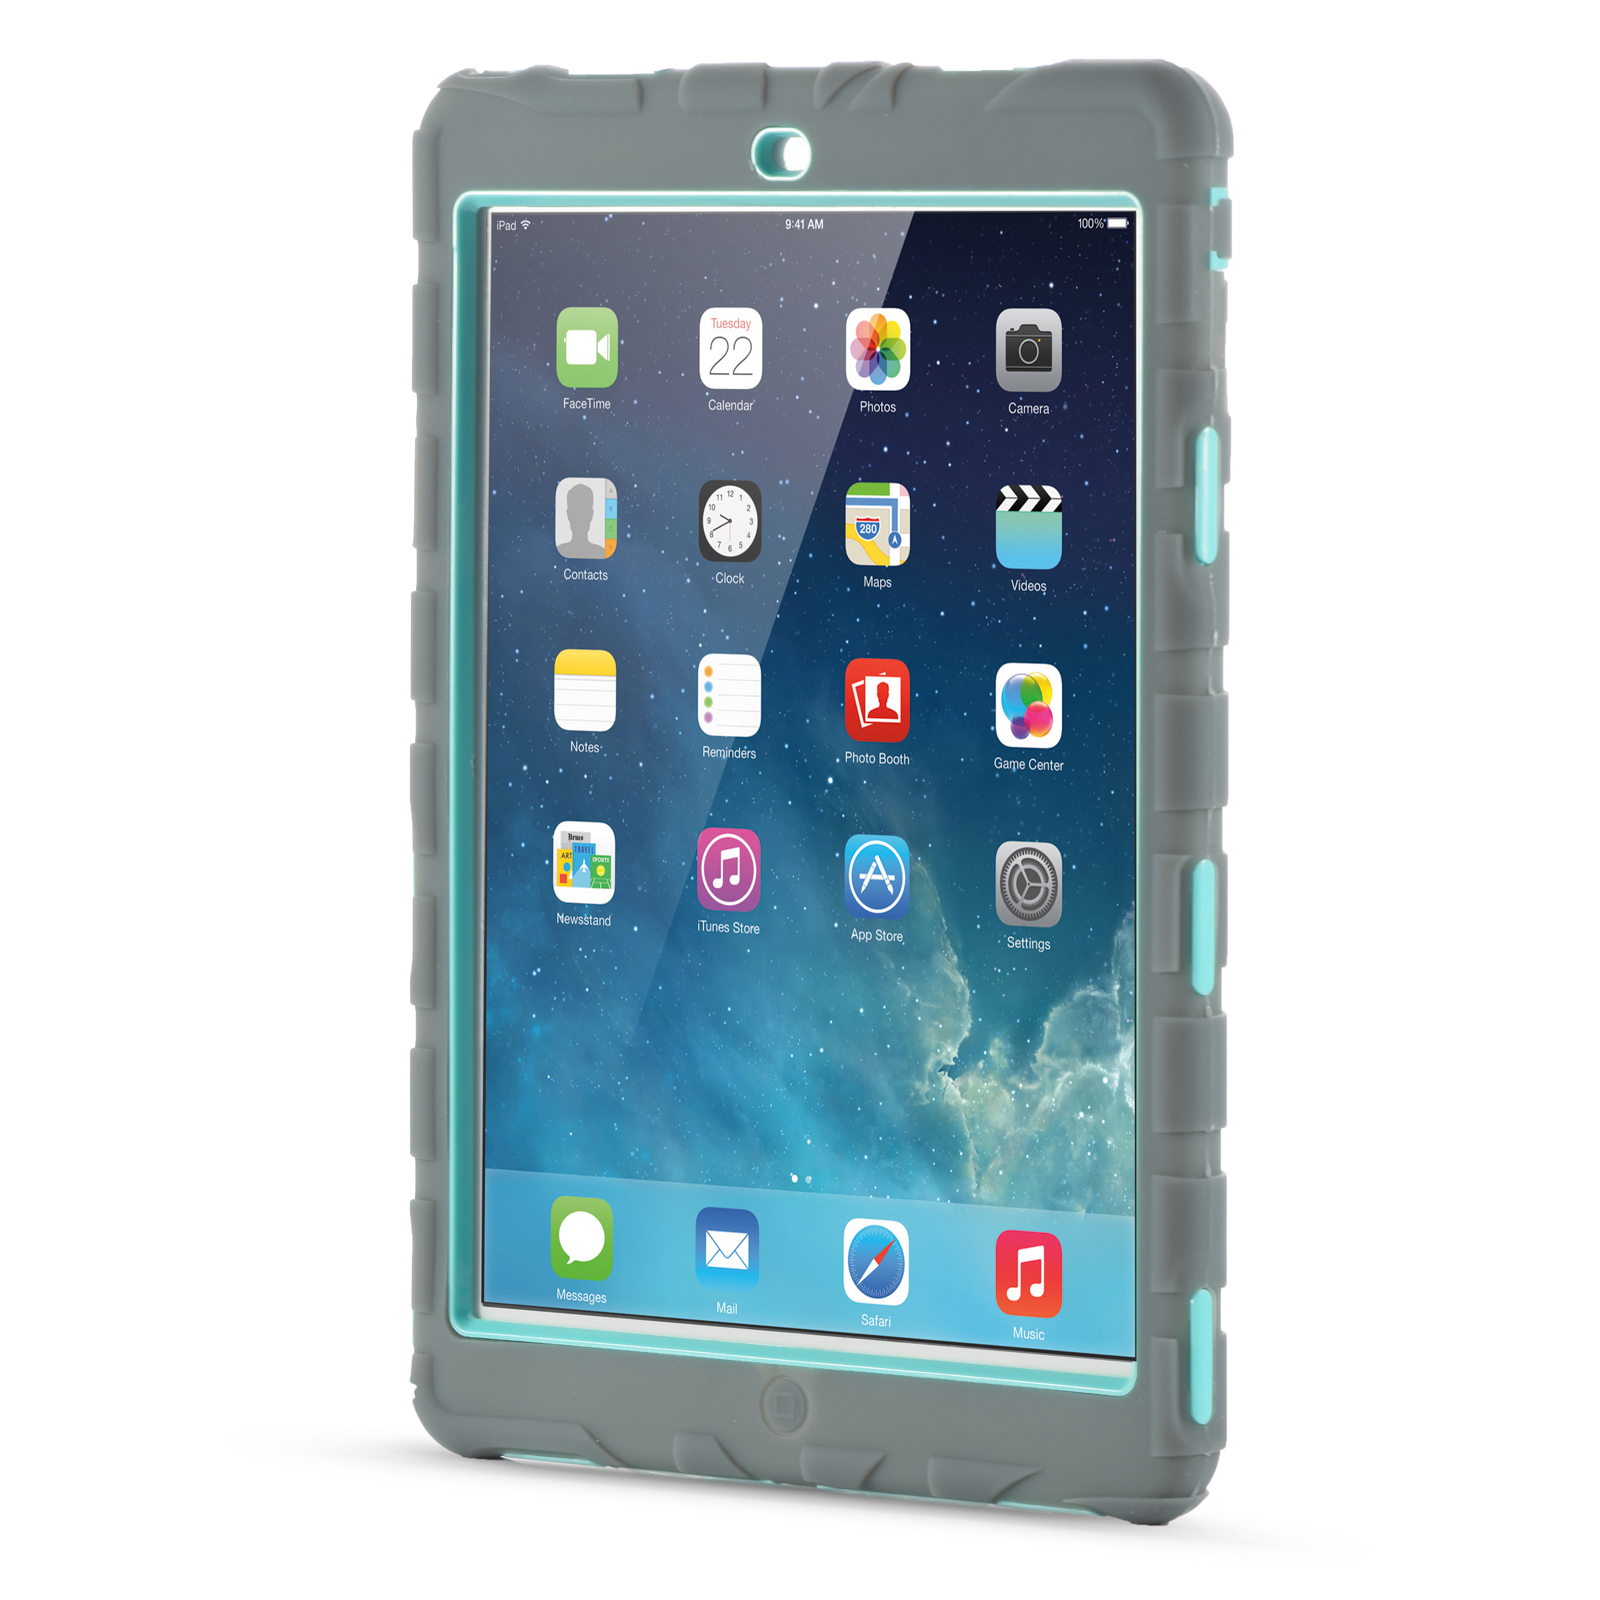 Squishy Ipad Cases : Hybrid Anti-drop Soft Rubber Protective Hard Case Cover For iPad 2/3/4 Mini Air eBay